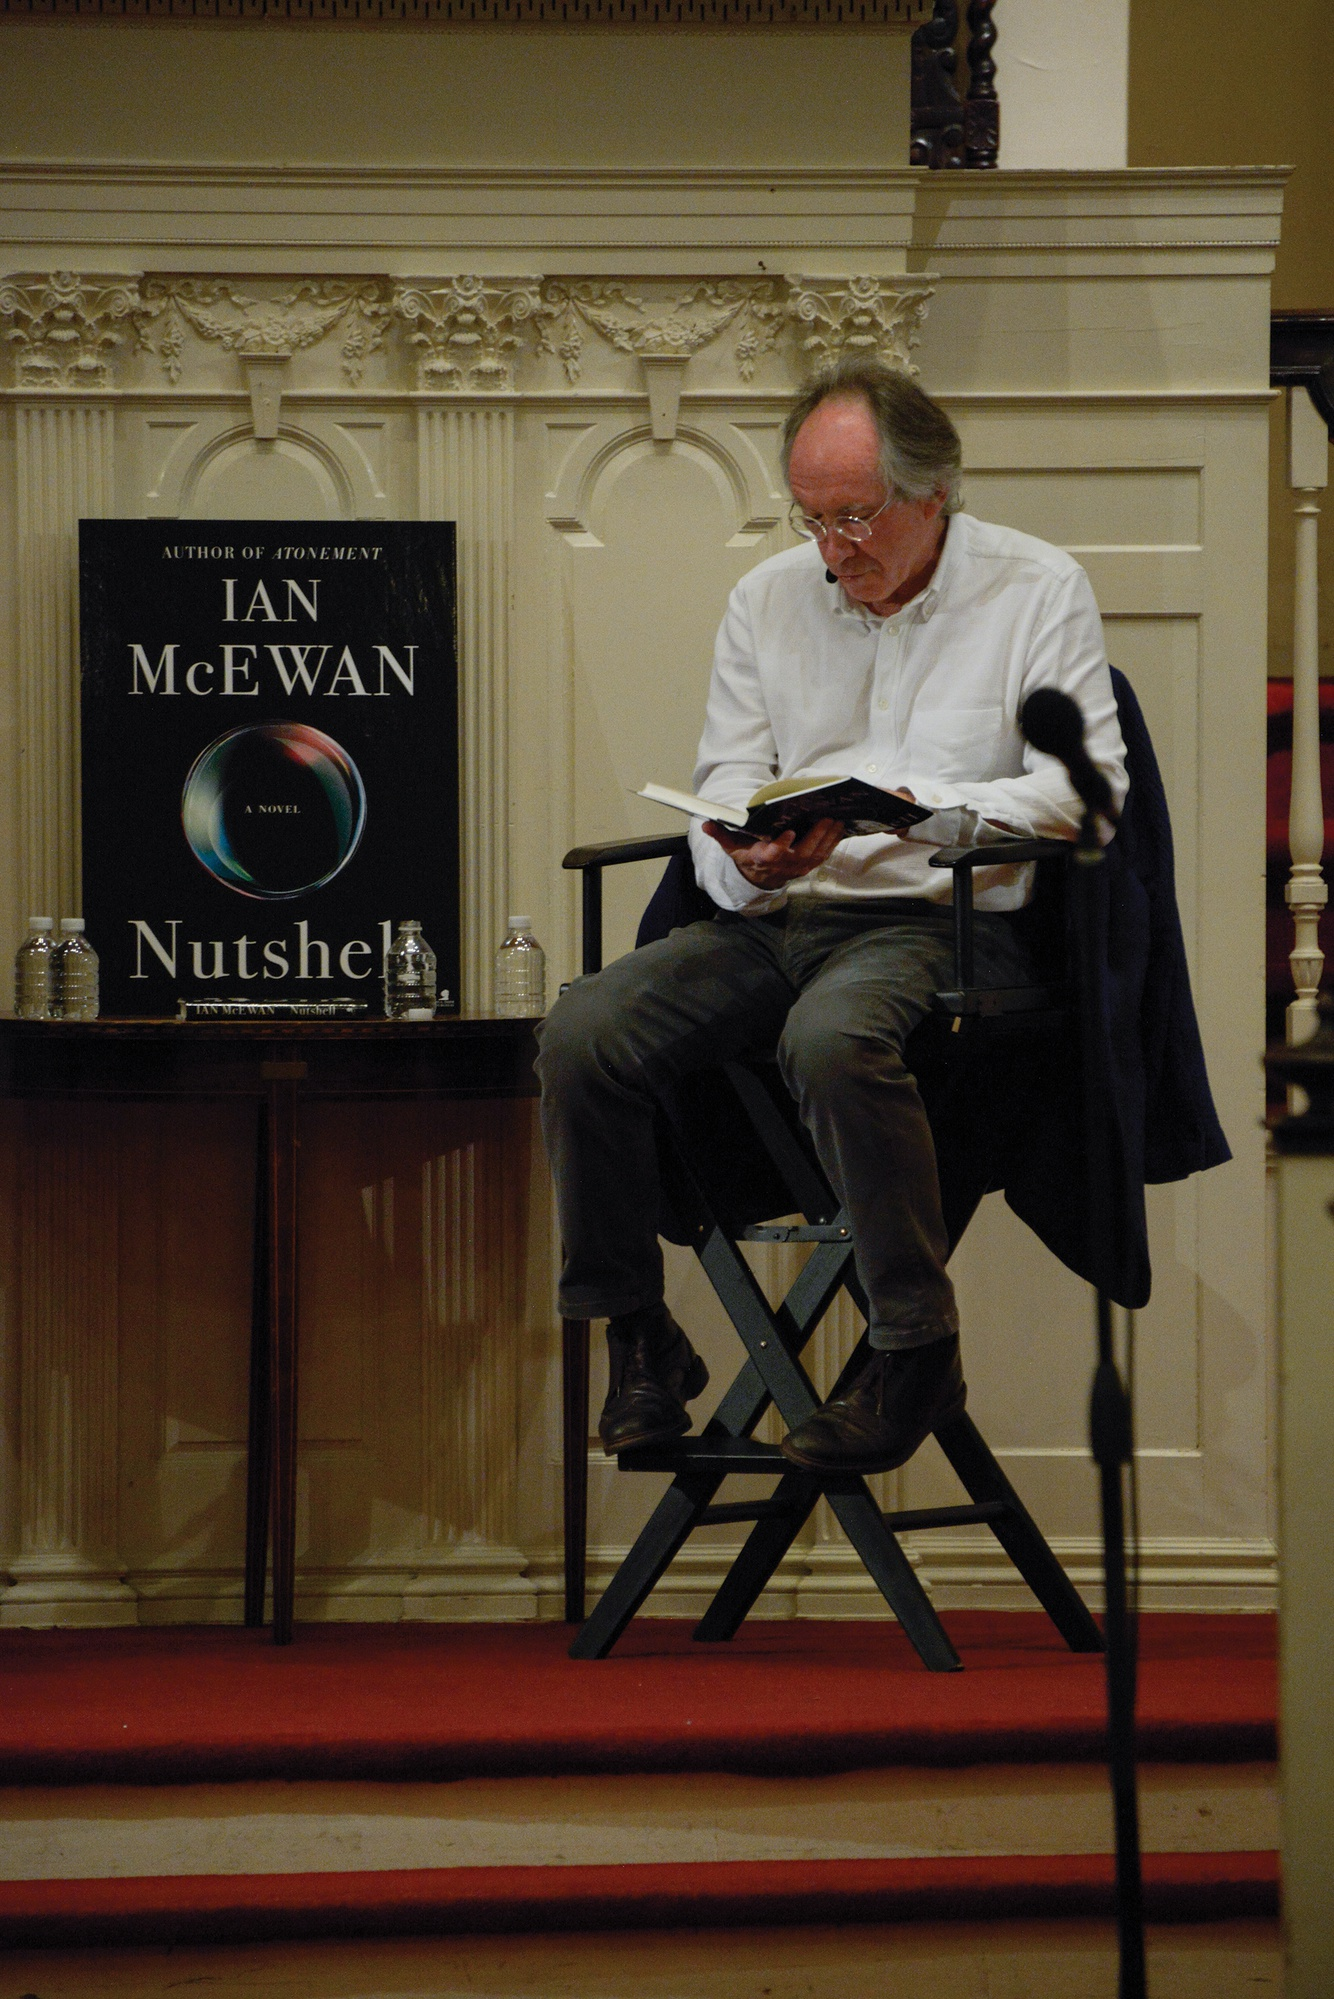 Ian McEwan, author of Atonement, reads aloud a chapter of his newest book, Nutshell.